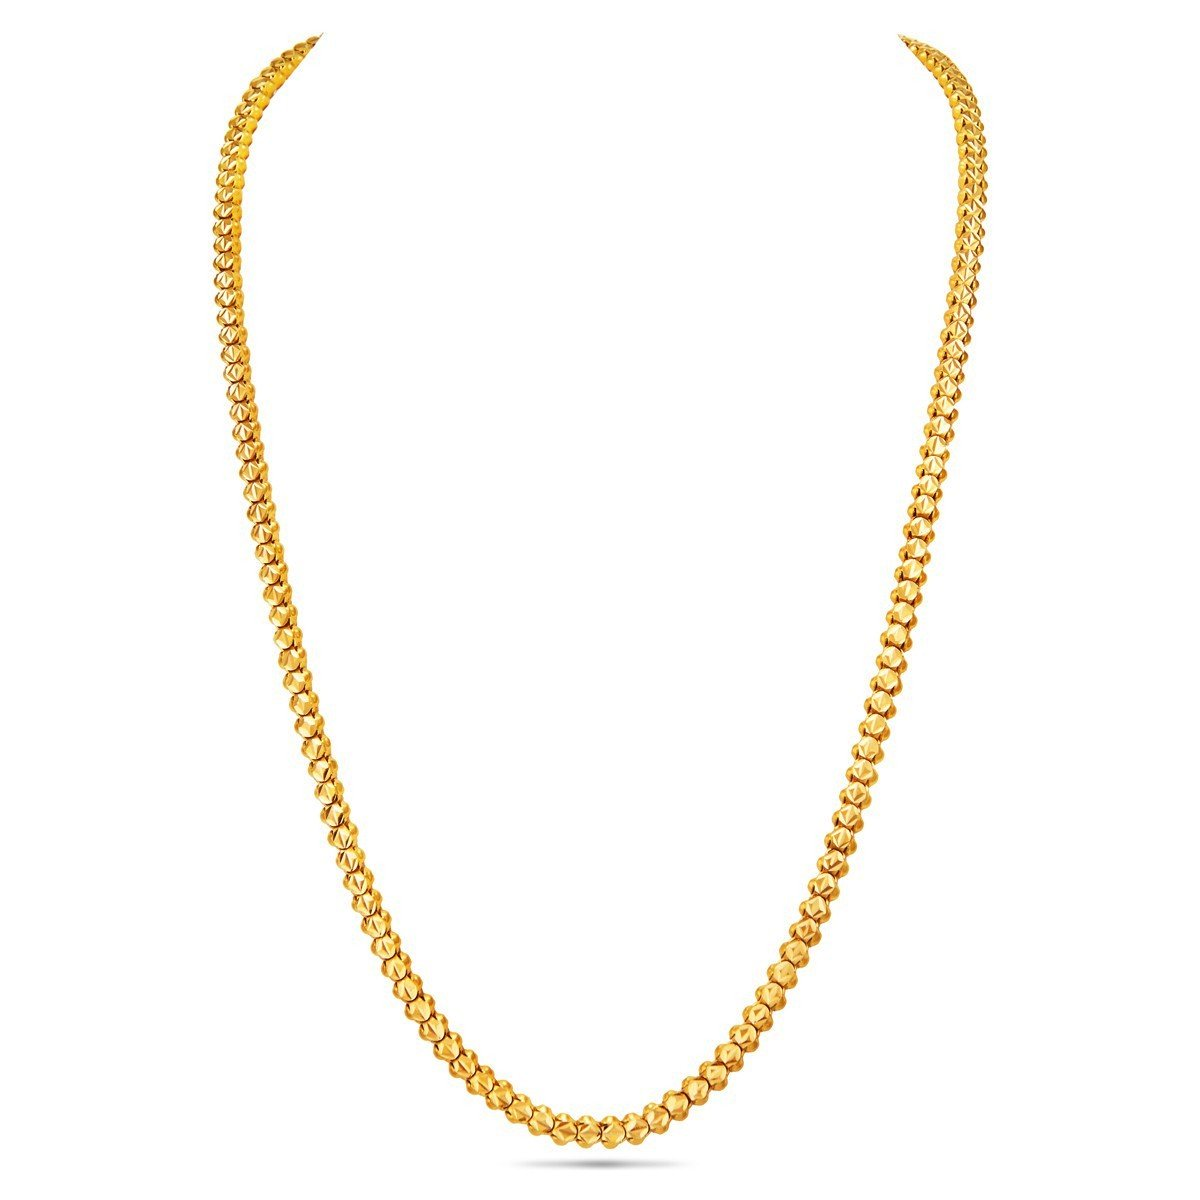 Gold Chain For Female